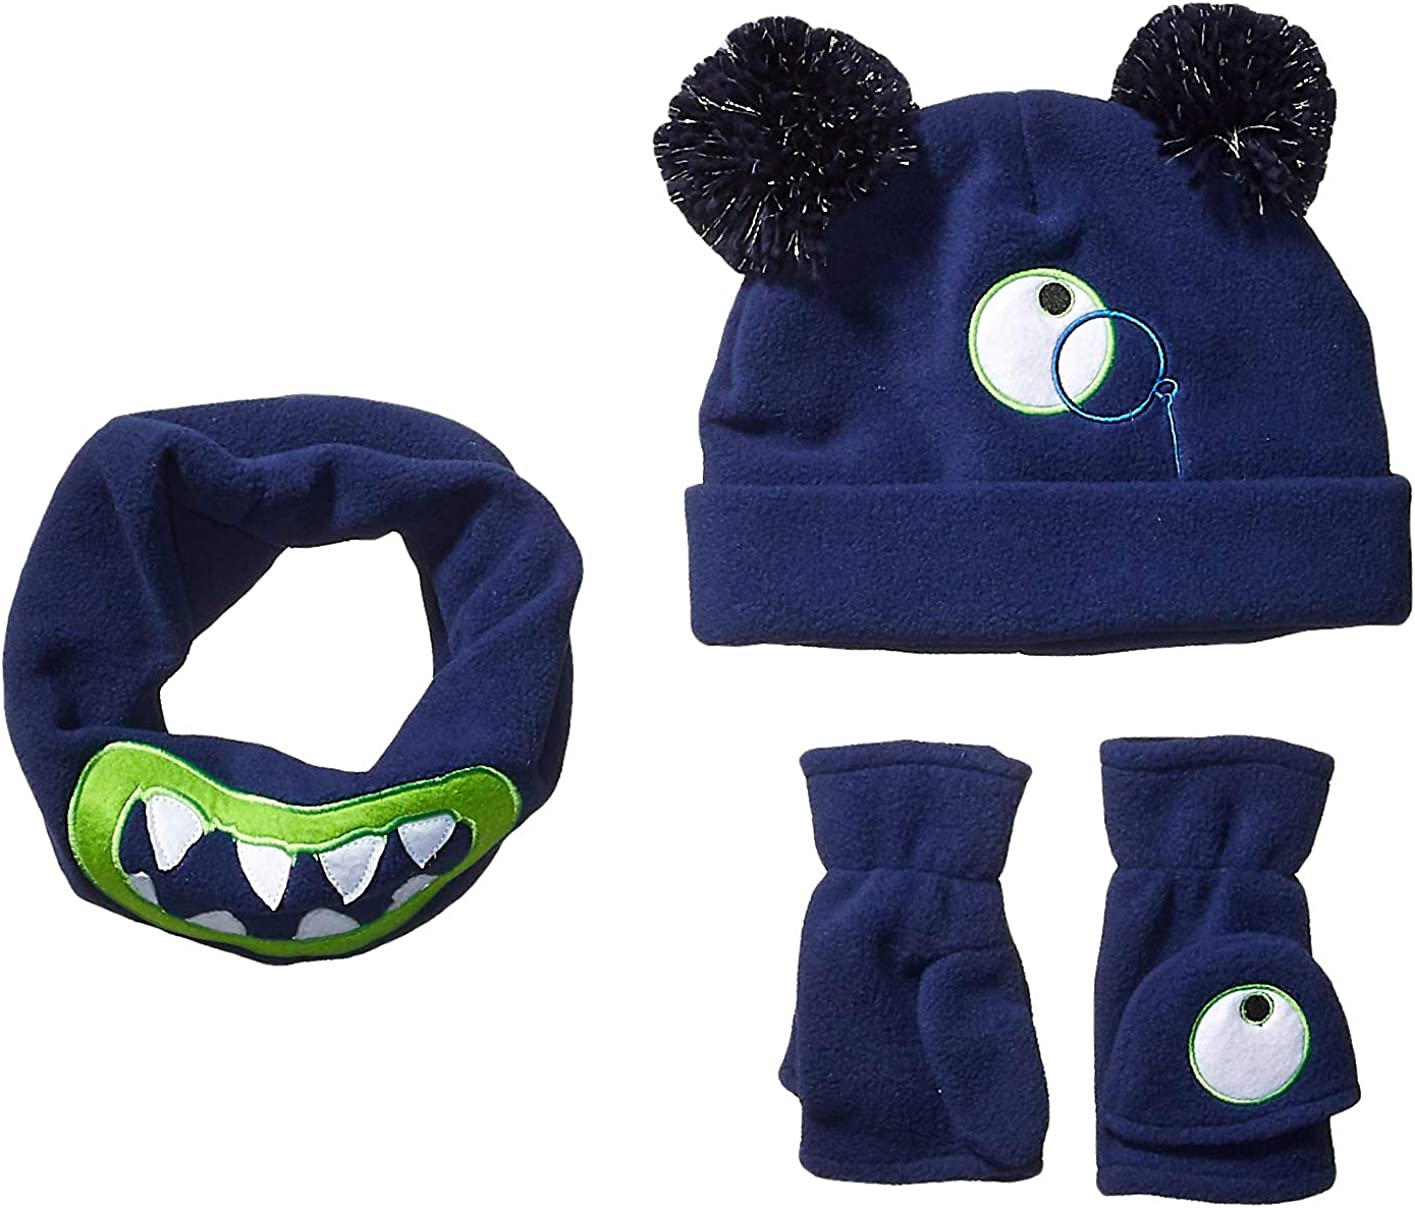 Spotted Zebra Boys' Fleece Hat Mittens Cold Weather Accessories Sets